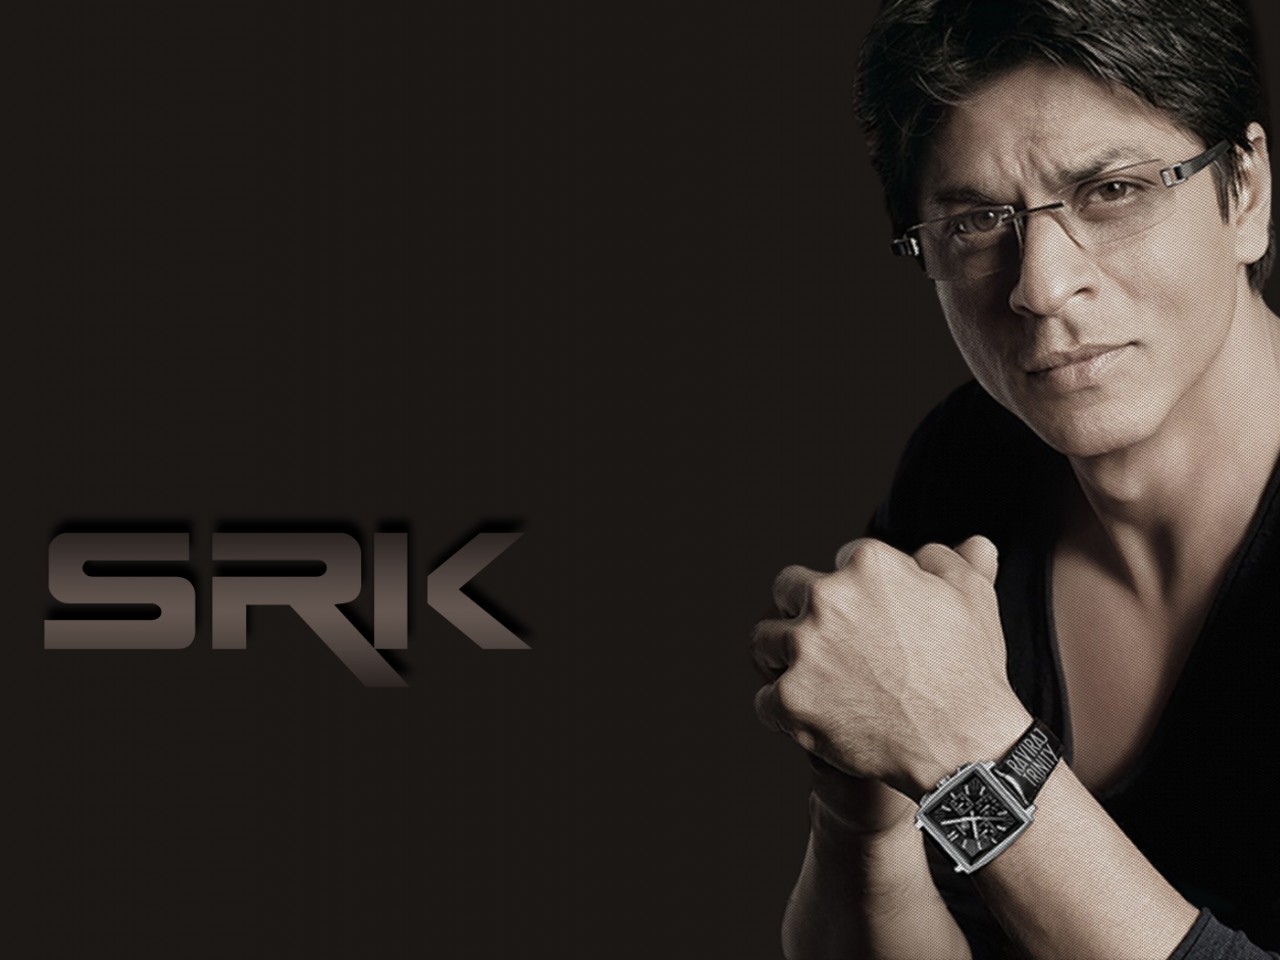 Shah Rukh Khan Wallpapers: Free Wallpapers: Shahrukh Khan Latest HD Wallpapers